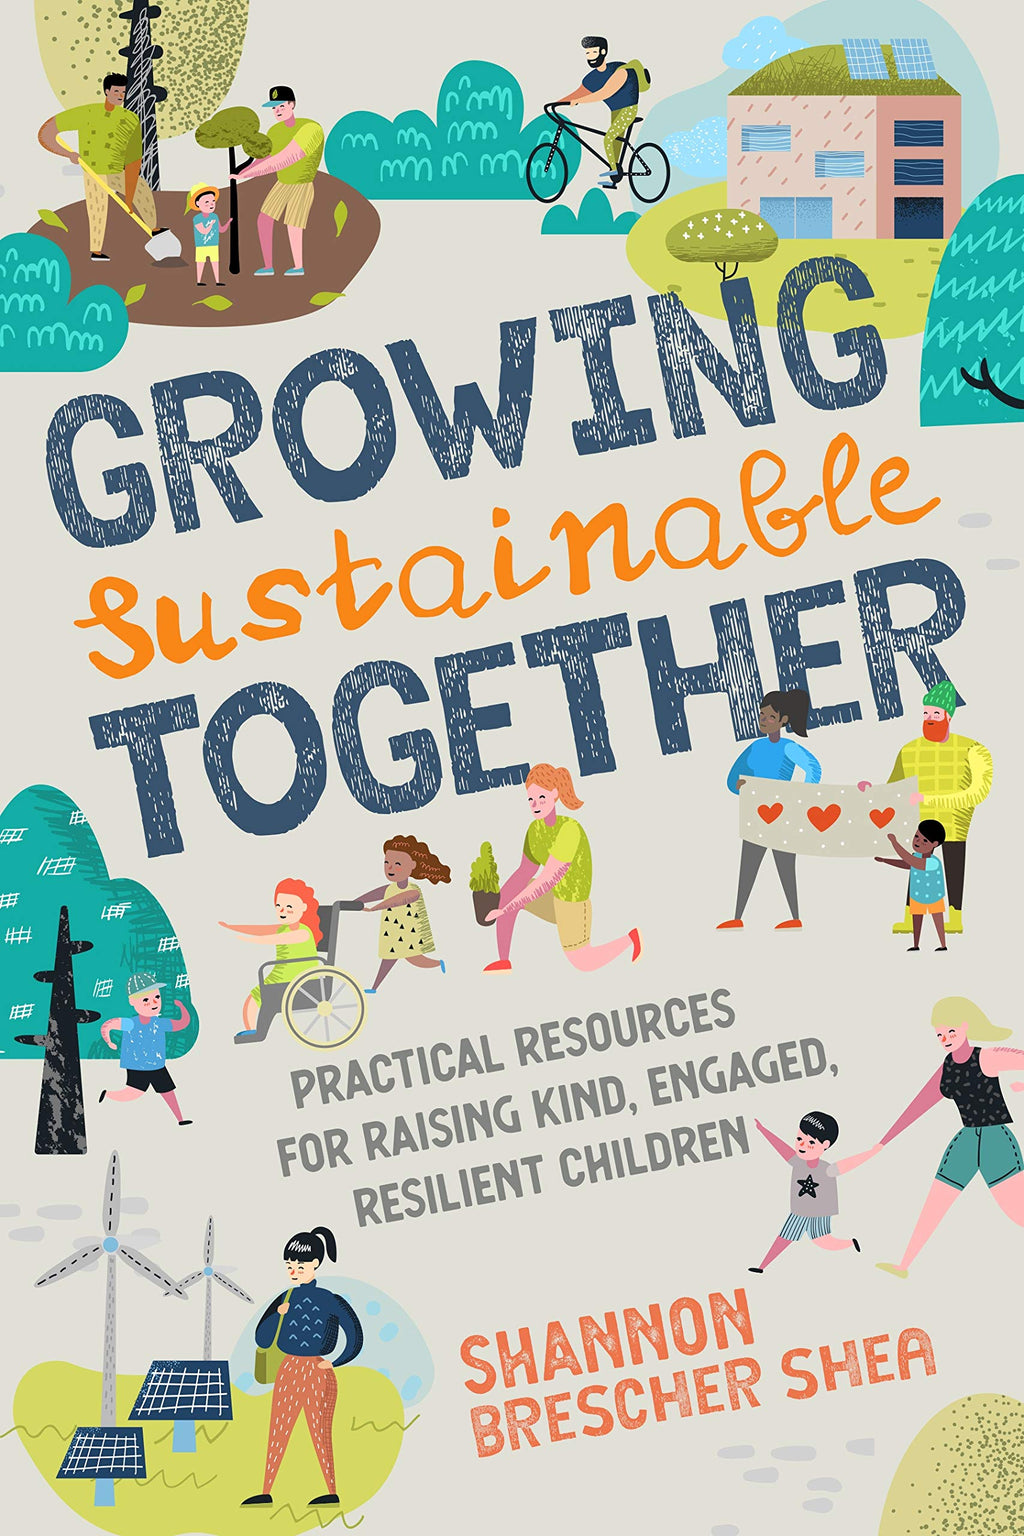 This book provides, tips, tools, advice, and activities for raising eco-friendly kids while nurturing compassion, resilience, and community engagement.